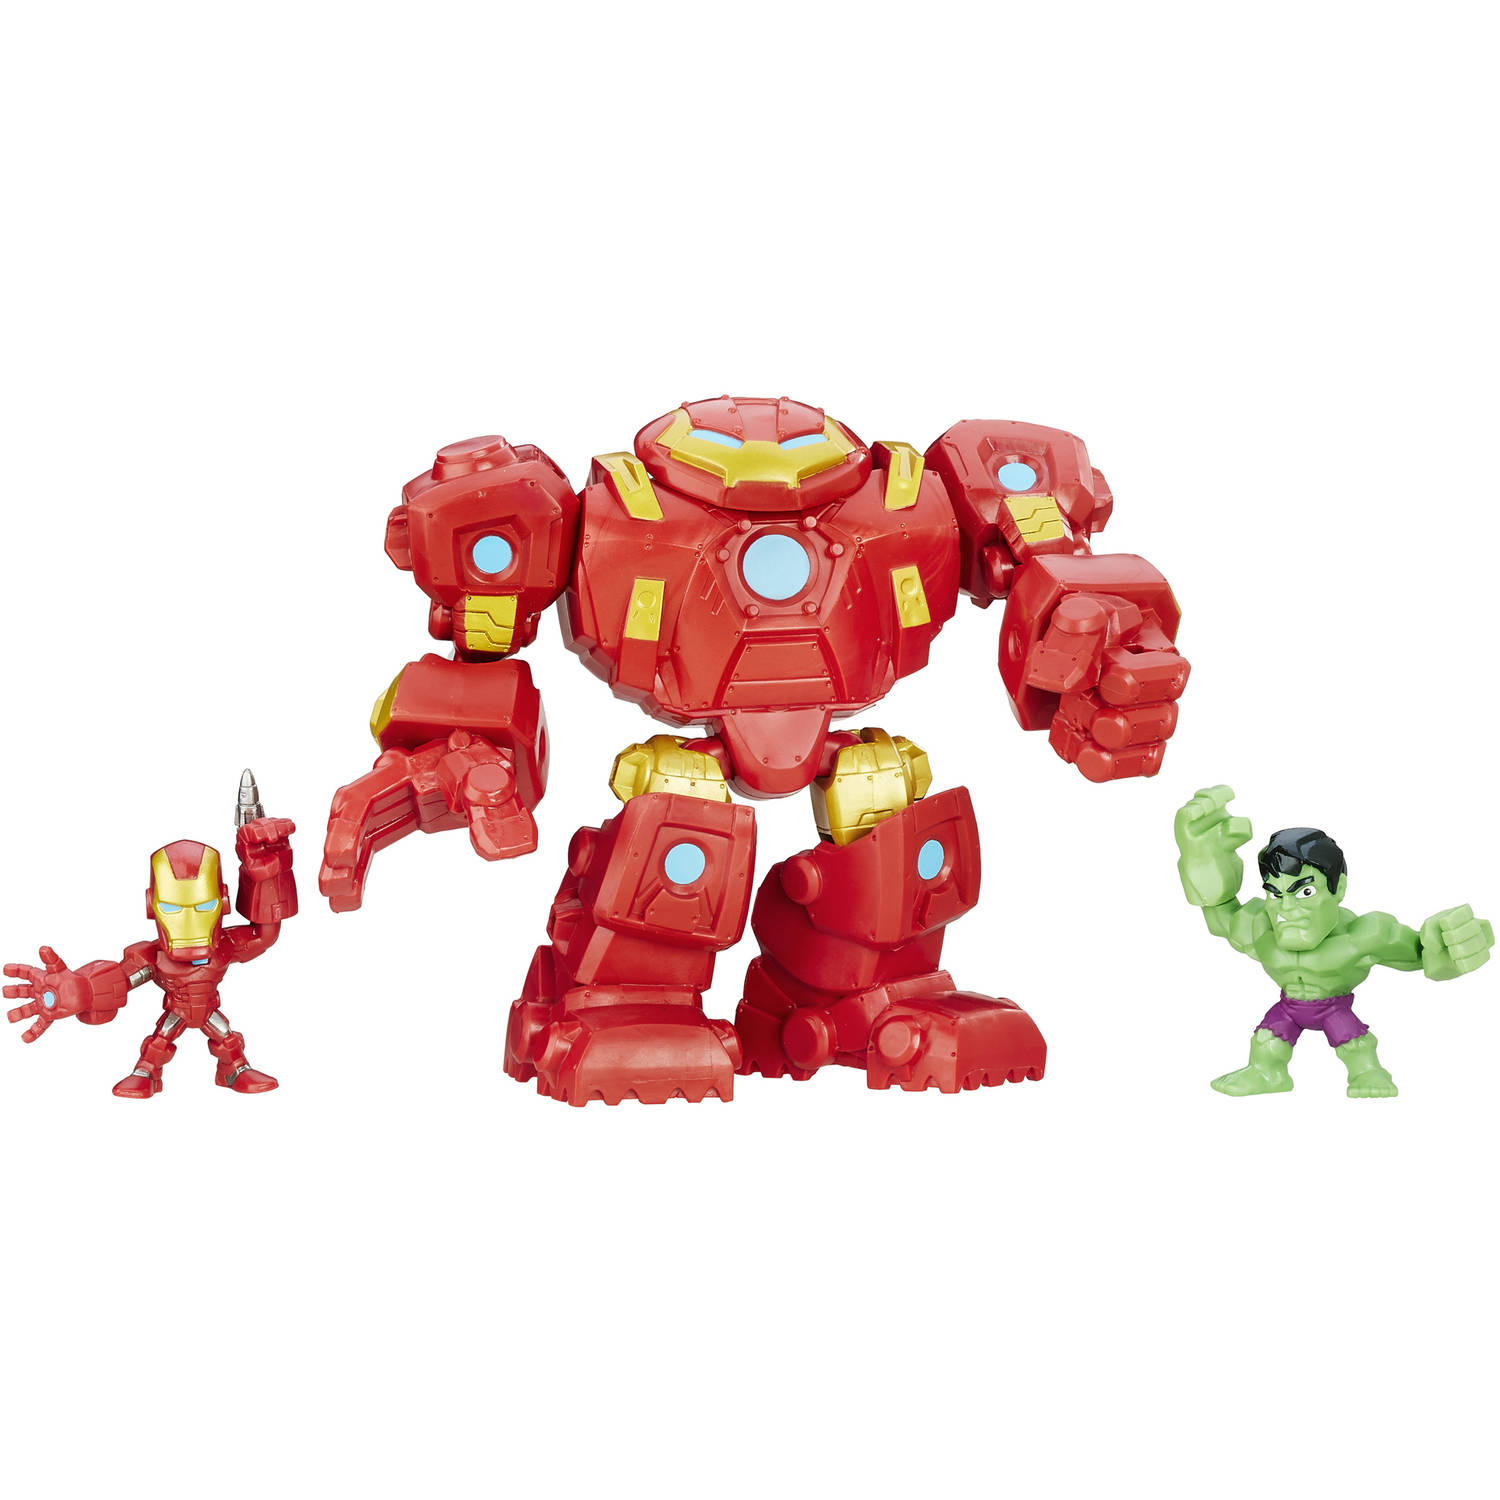 Marvel Super Hero Mashers Hulkbuster Fury Force Figure Set Image 1 of 2